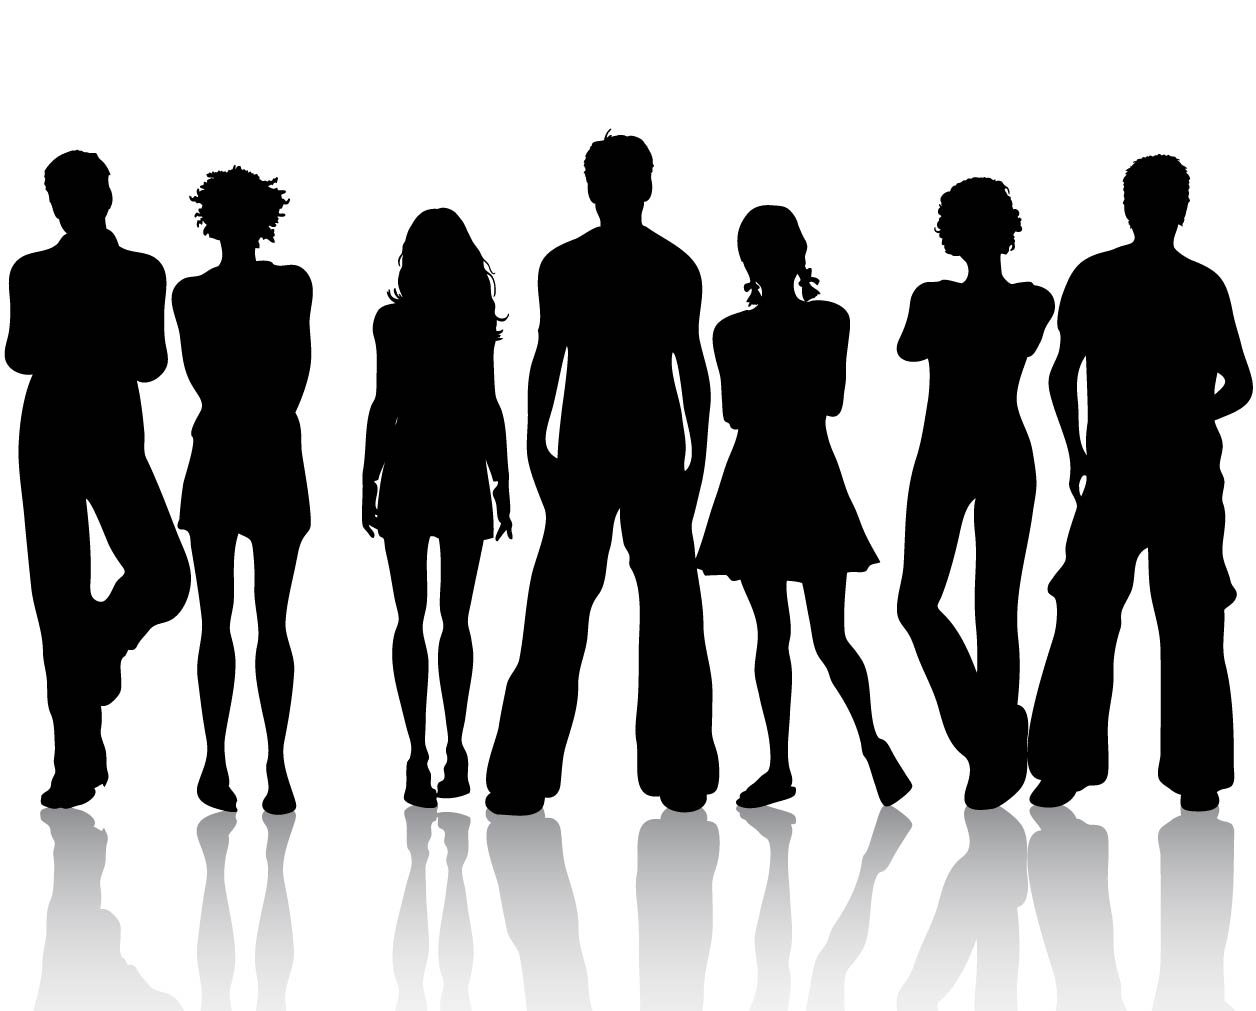 16 Free Vector Silhouettes Of People Images